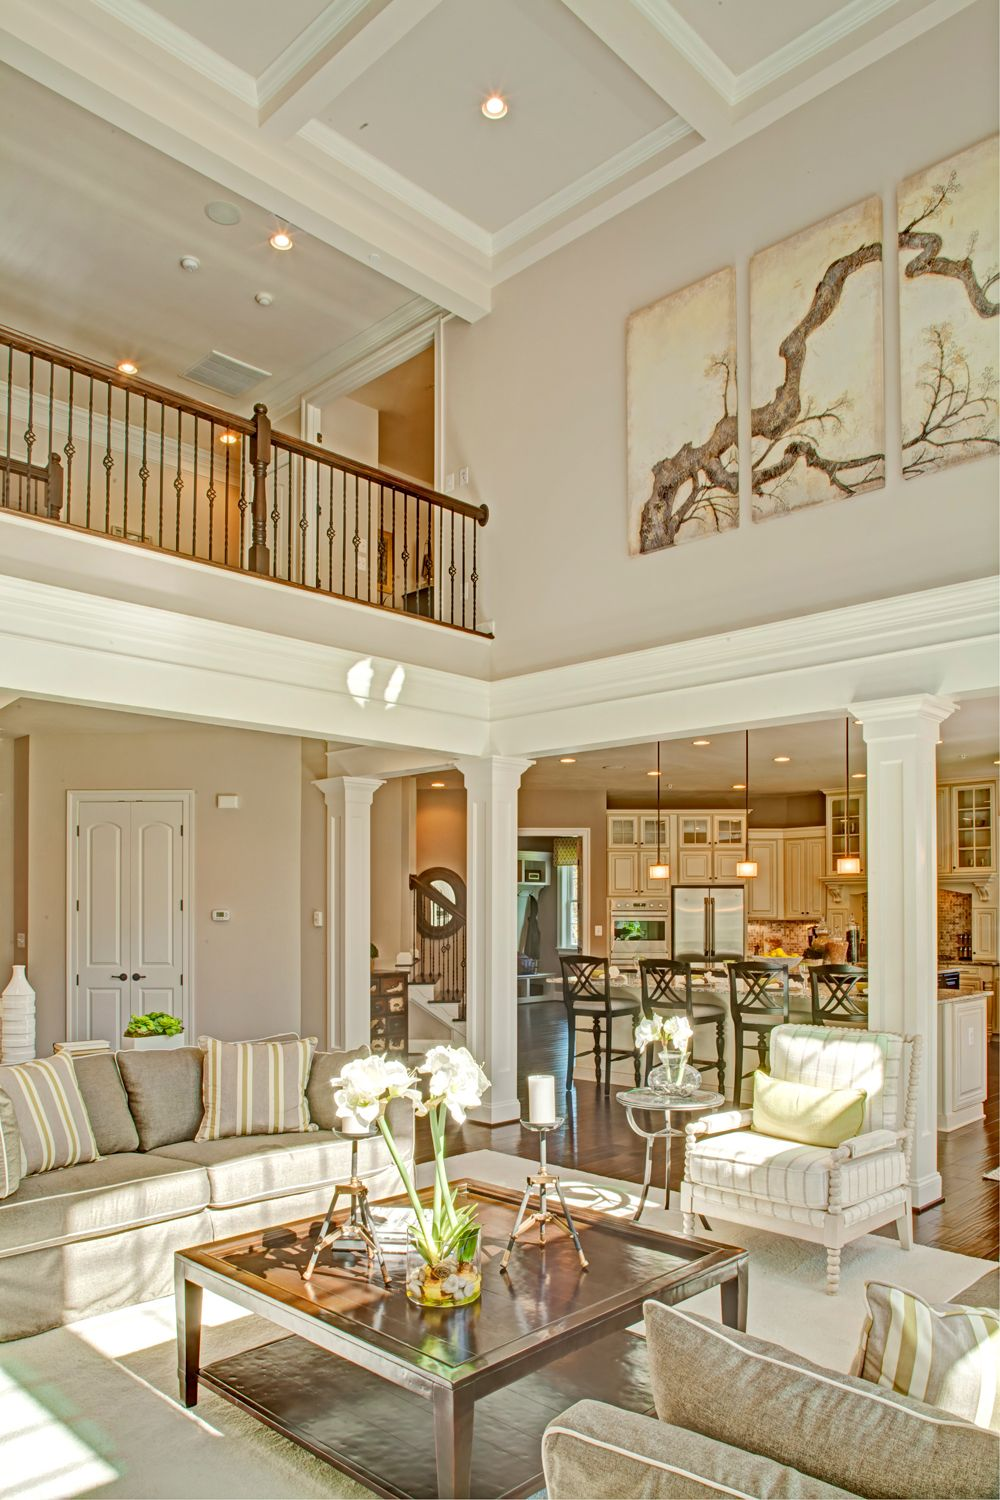 Two Story Family Room With Coffered Ceiling Google Search Family Room Decorating High Ceiling Living Room Living Room Ceiling